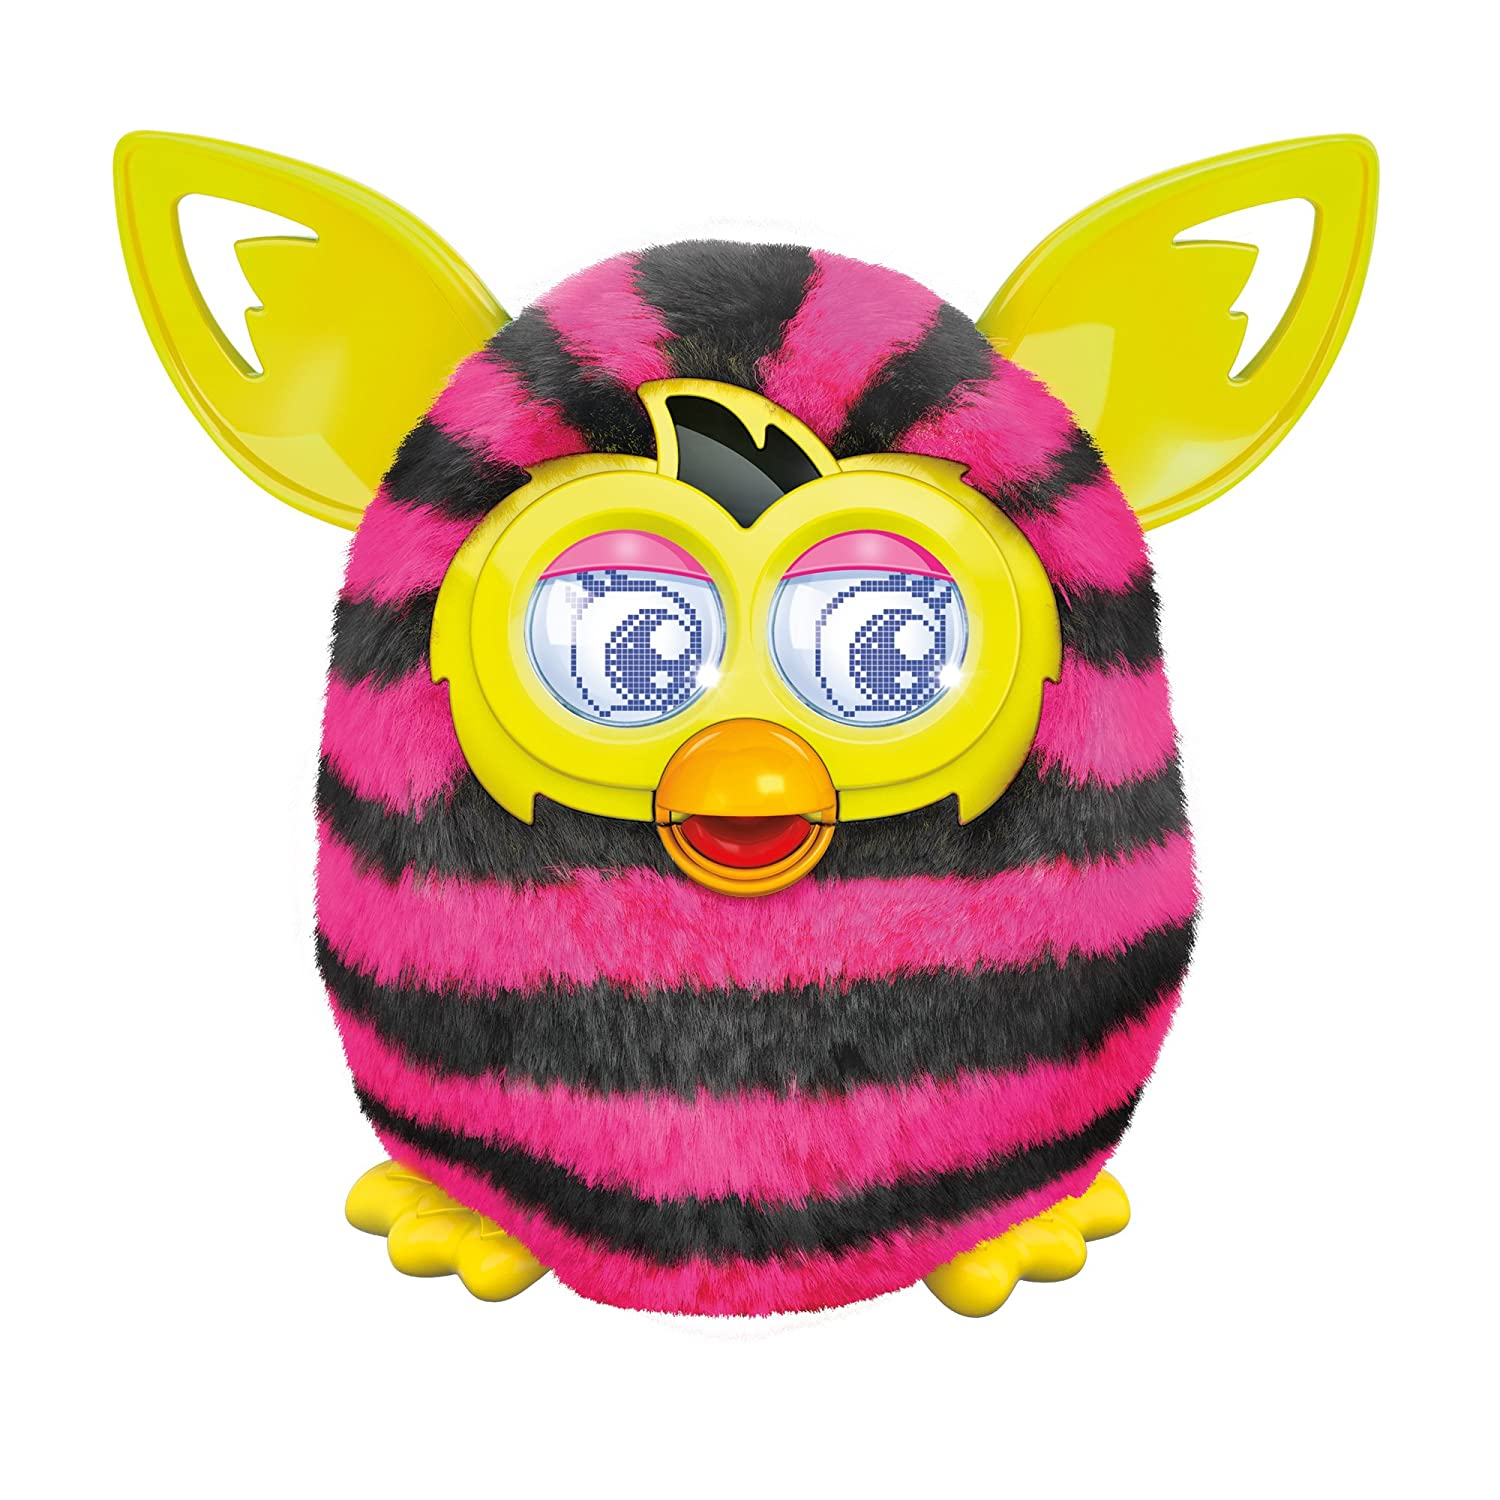 [UK-Import]Furby Boom – Pink and Black Stripes jetzt kaufen